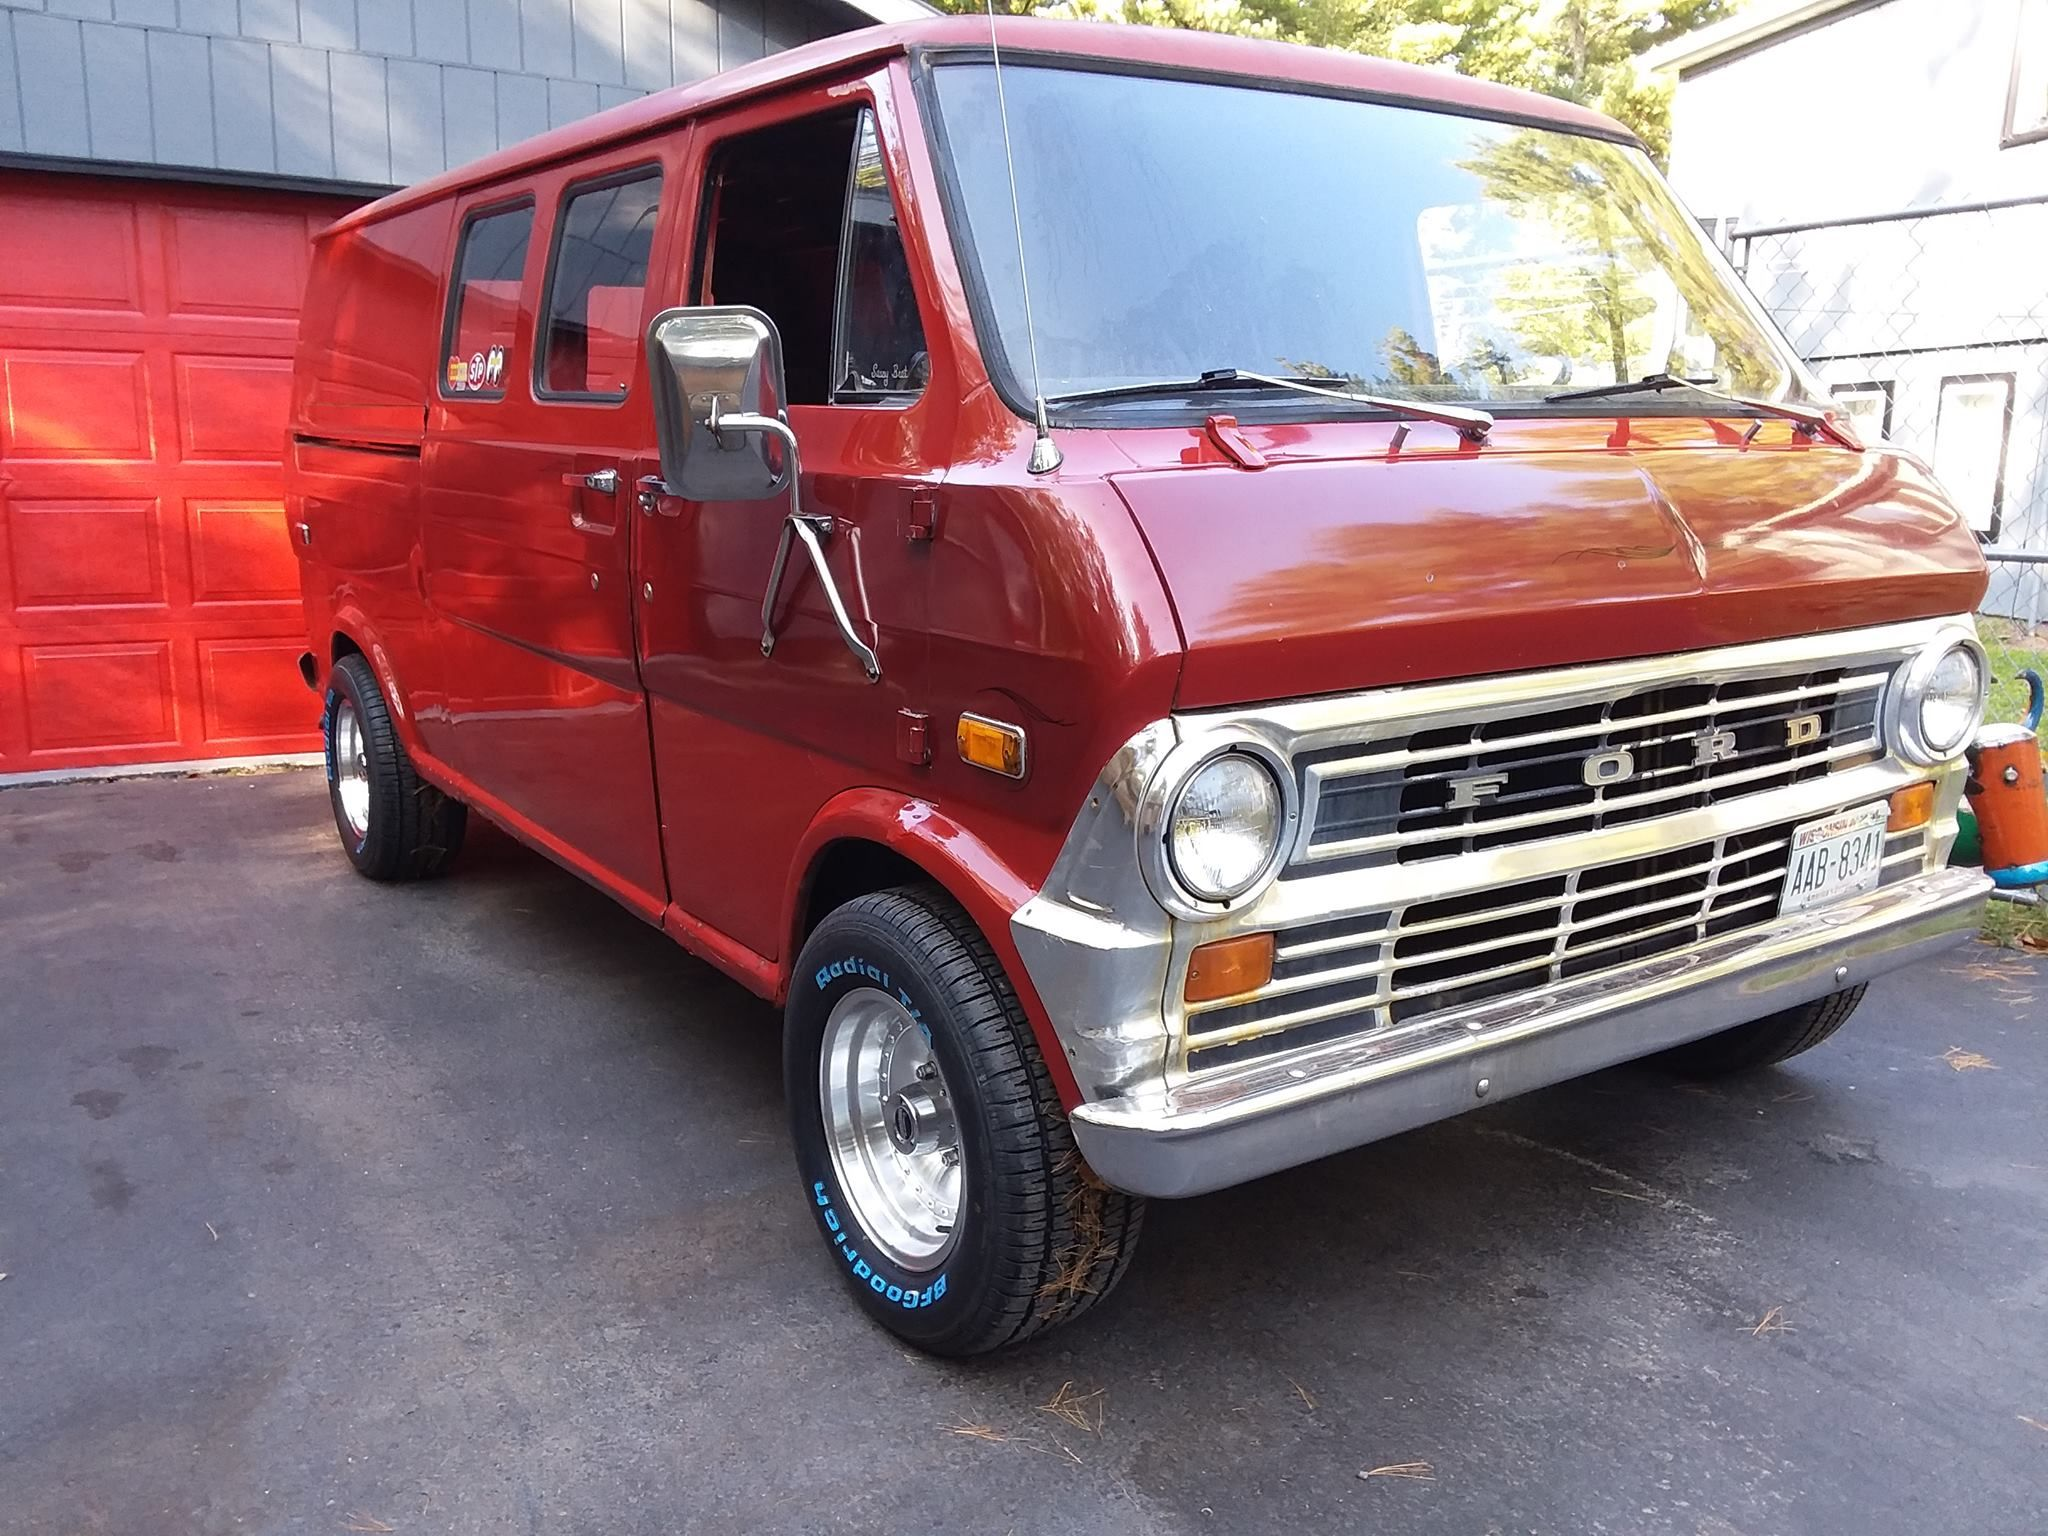 255 60 15 On 8 Rims Custom Vans Ford Van Vans